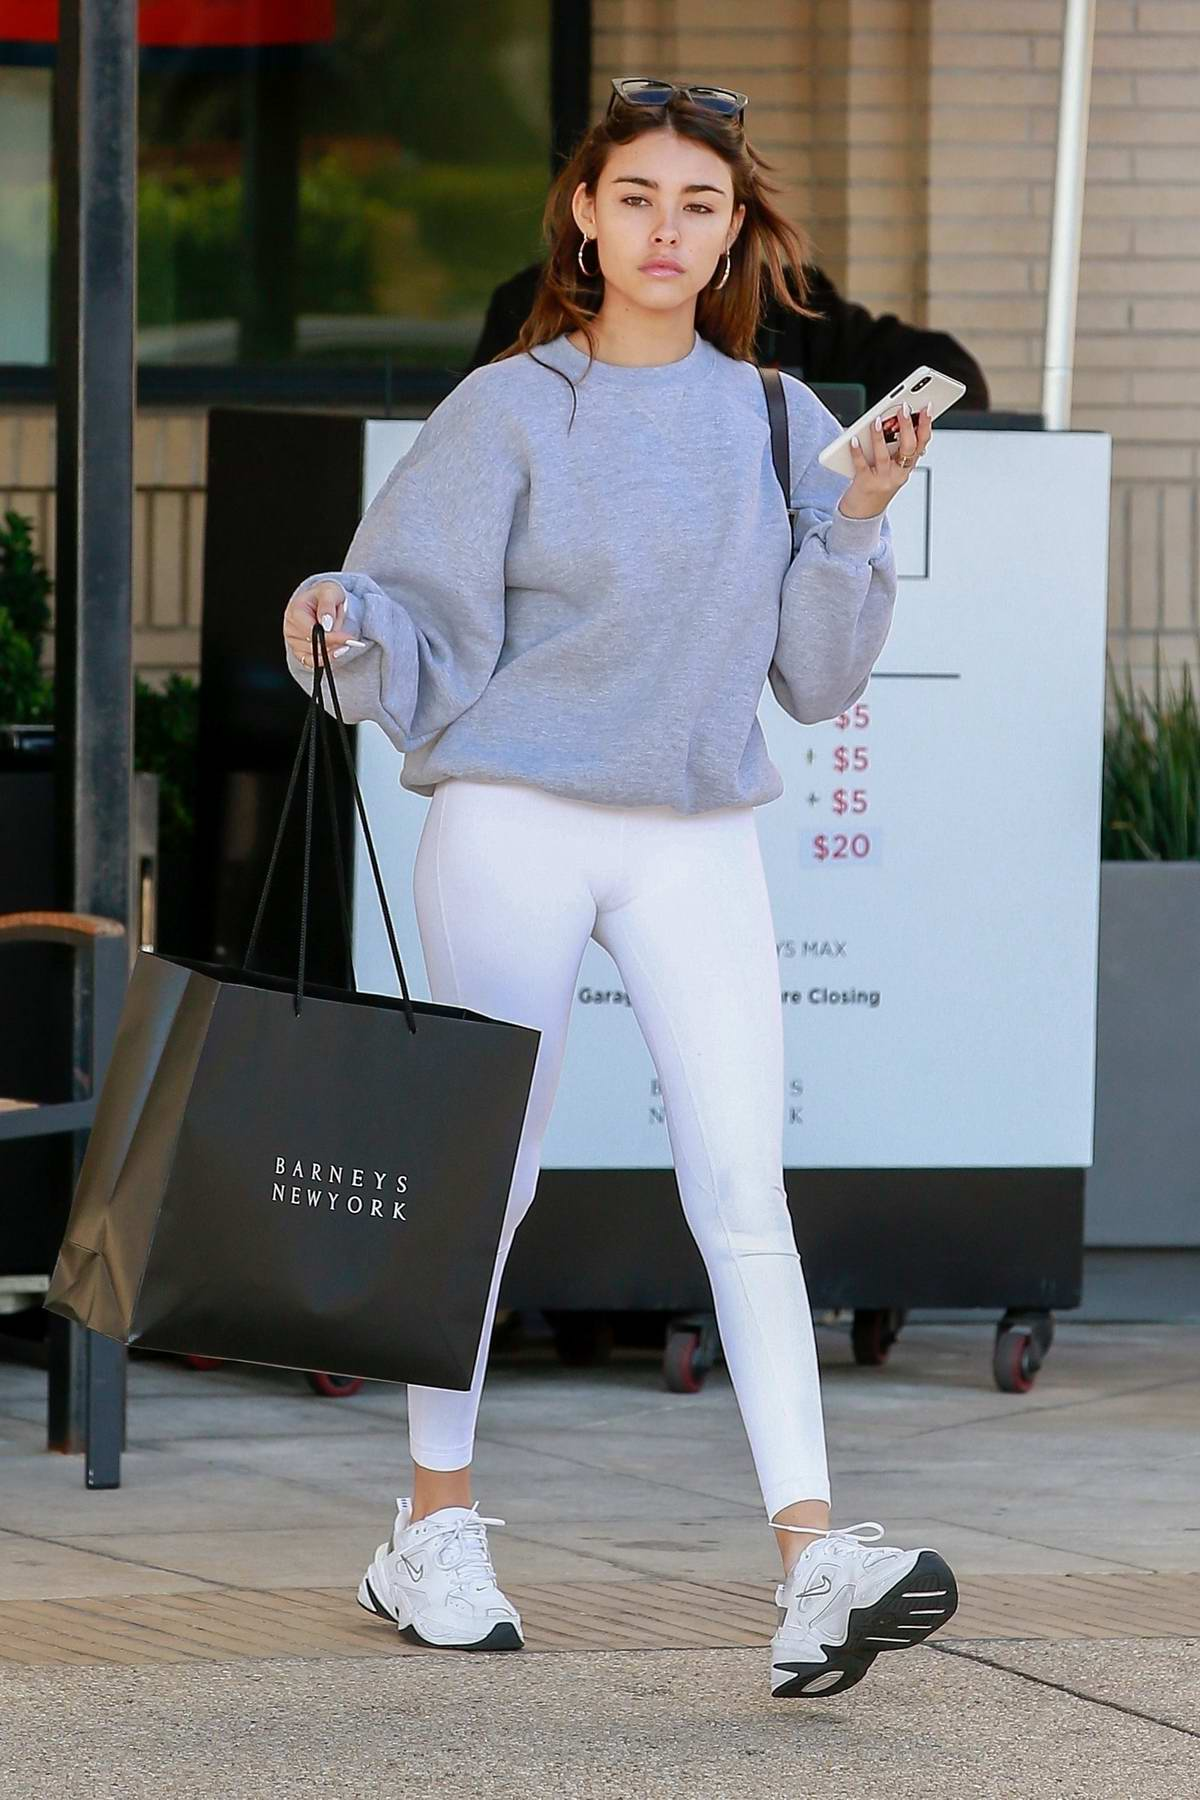 Madison Beer sports grey sweatshirt and white leggings during a trip to Barneys New York in Beverly Hills, California